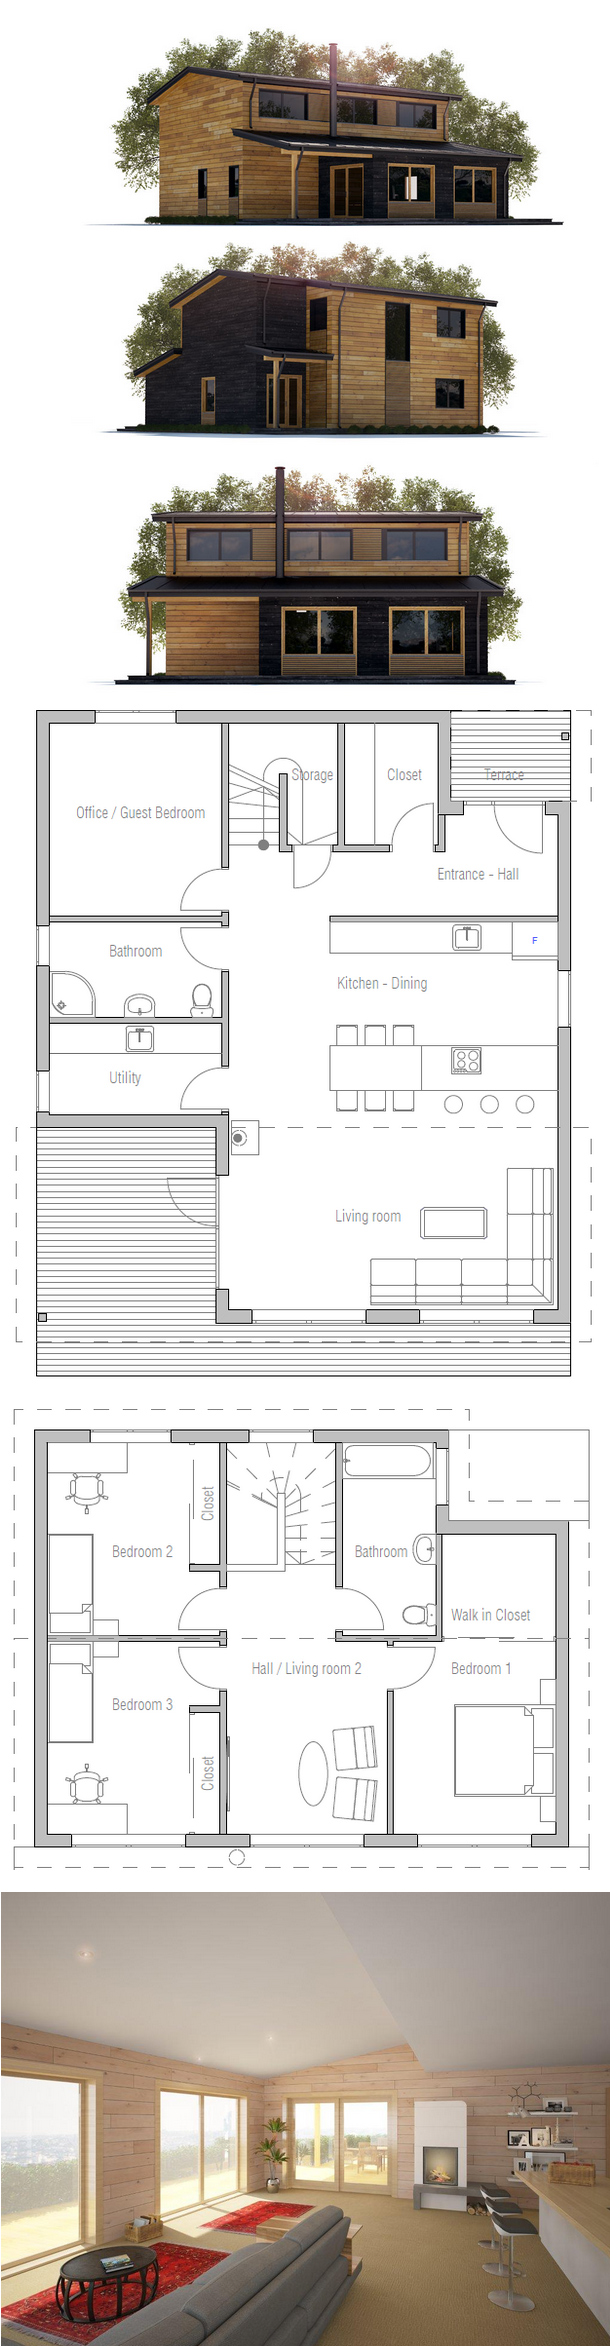 House plan my house pinterest house architecture and smallest